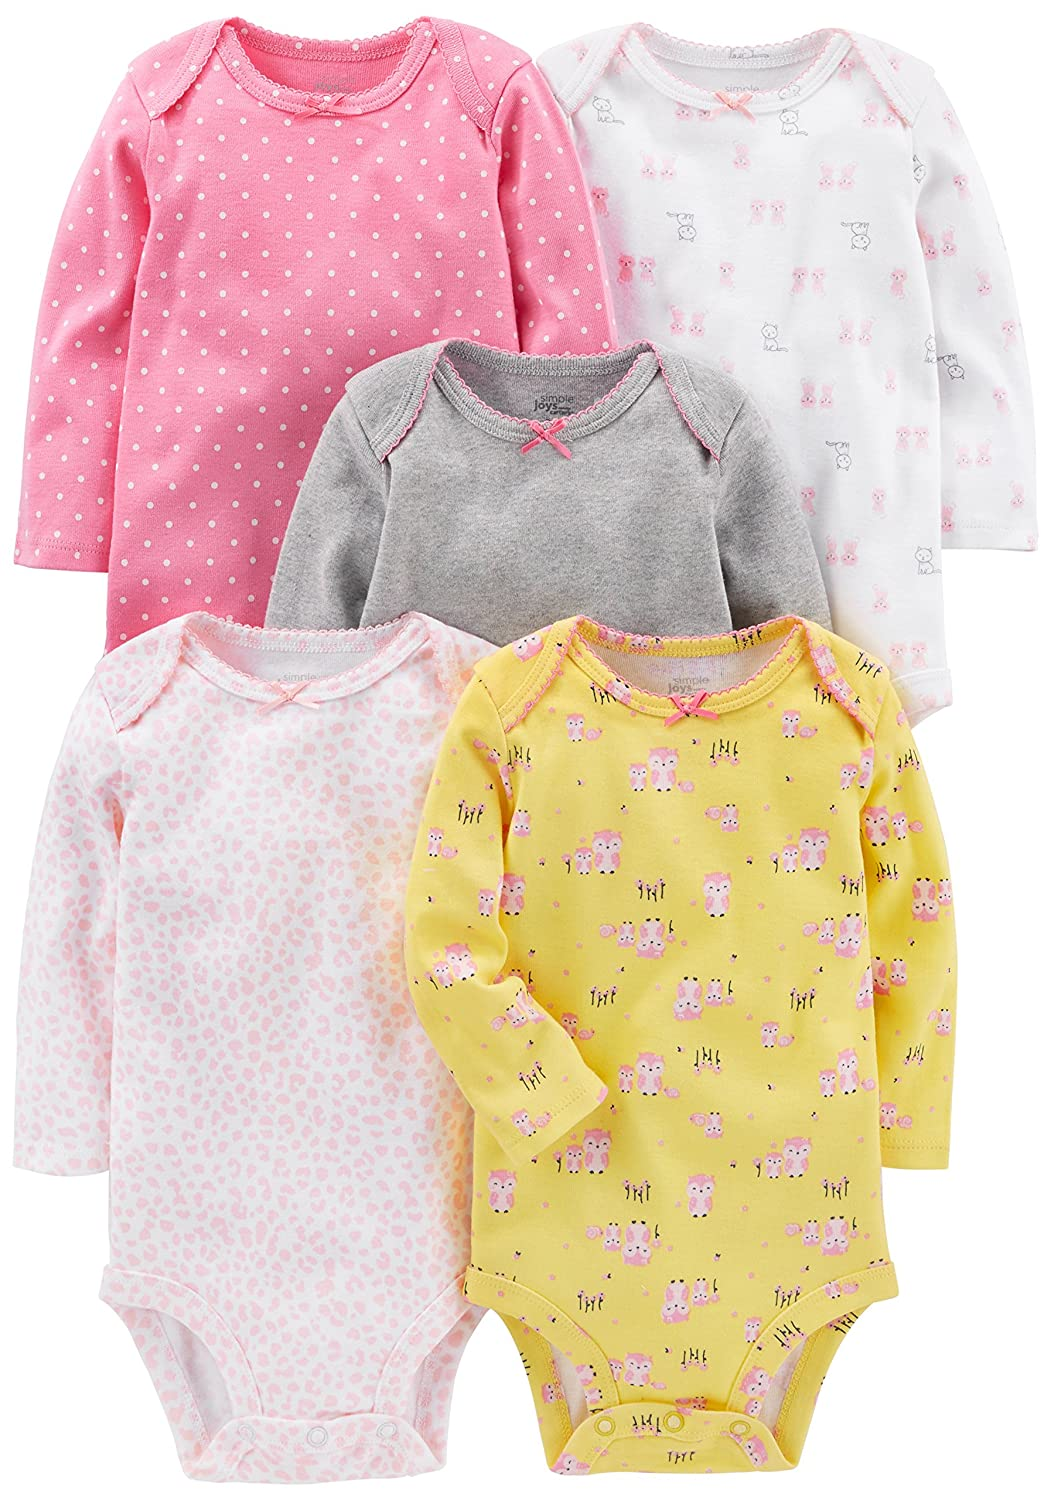 Simple Joys by Carter's Girls' 5-Pack Long-Sleeve Bodysuit Simple Joys by Carter' s 5PKBS